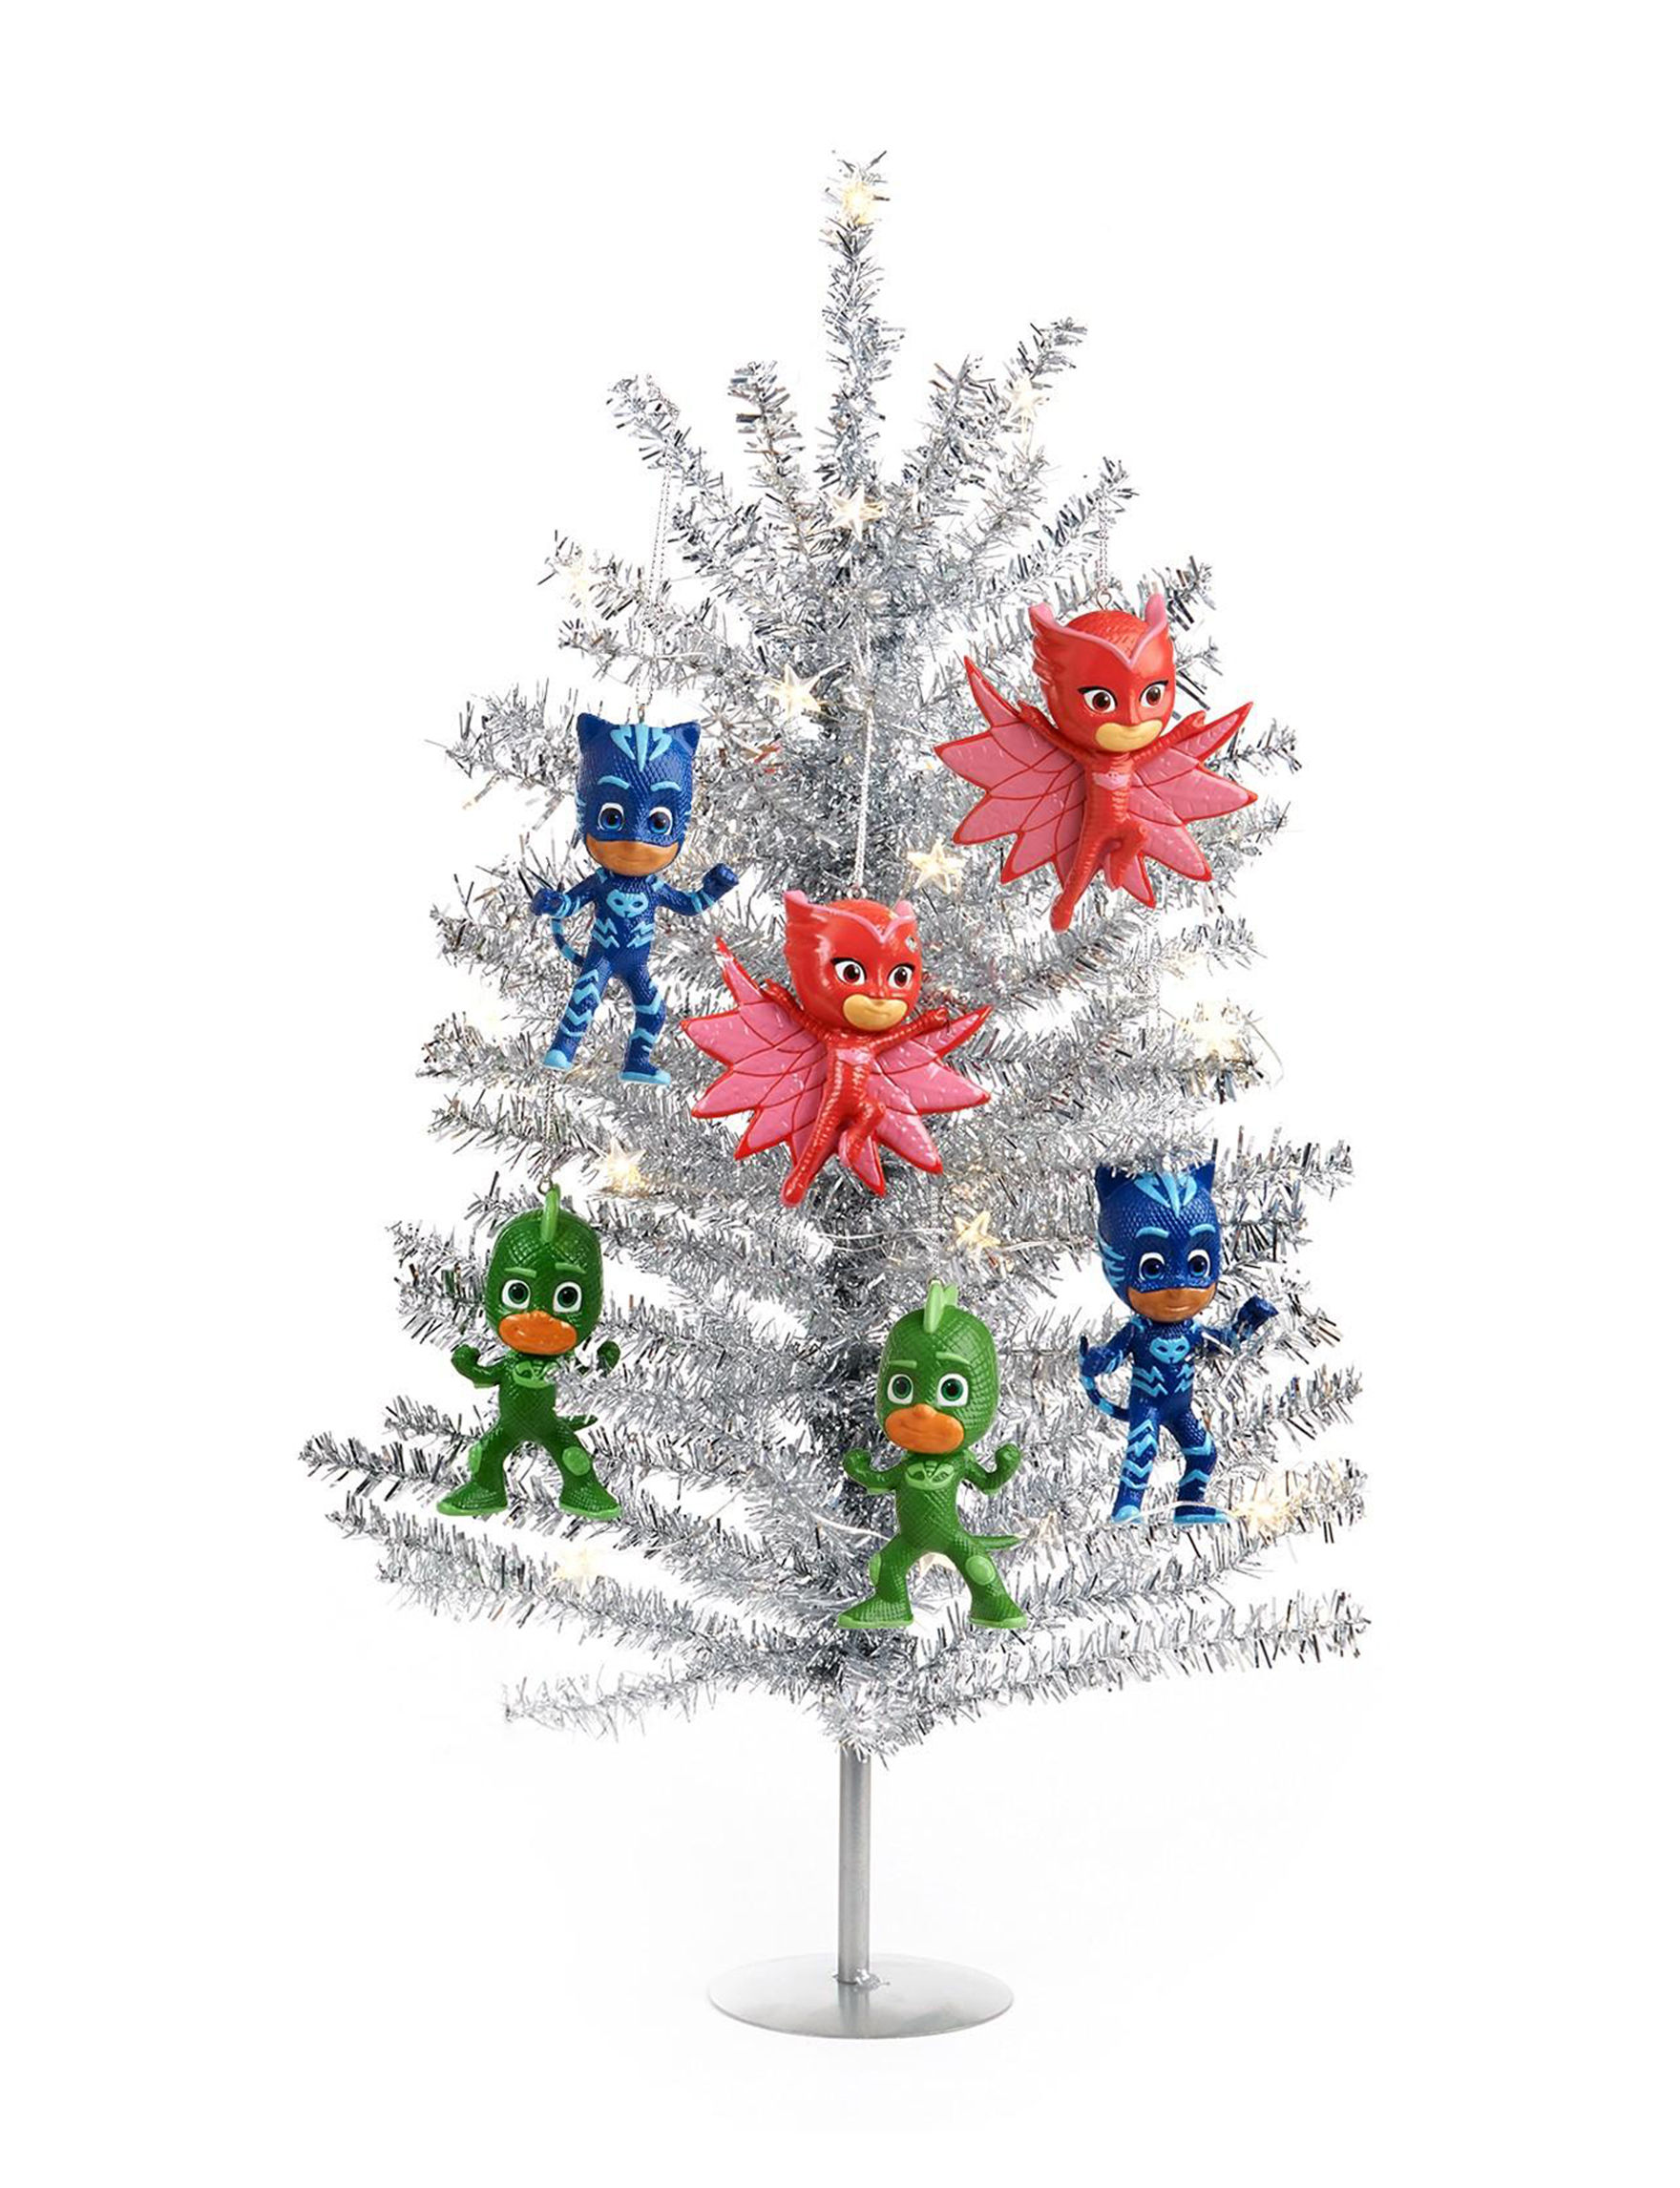 BuySeasons Silver Christmas Trees Decorative Objects Holiday Decor